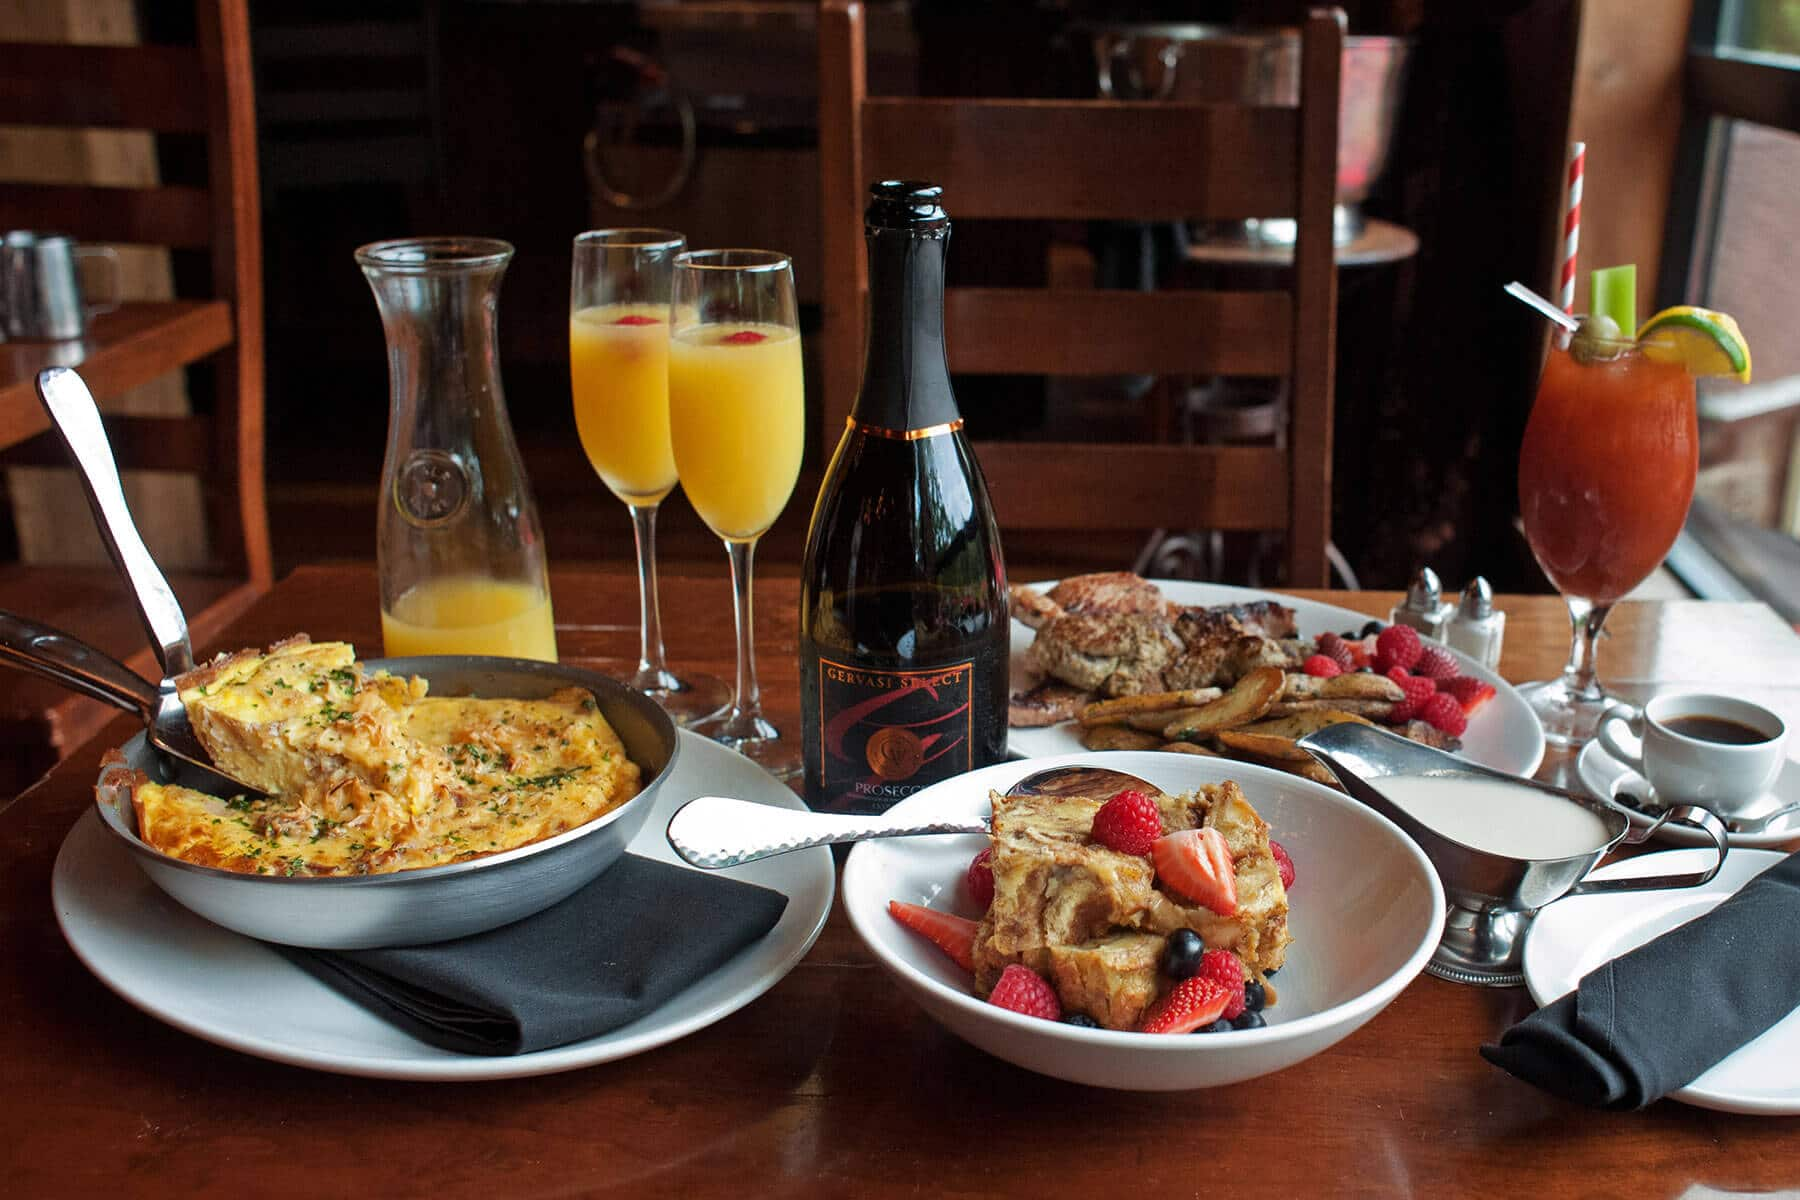 New Sunday breakfast options at The Bistro